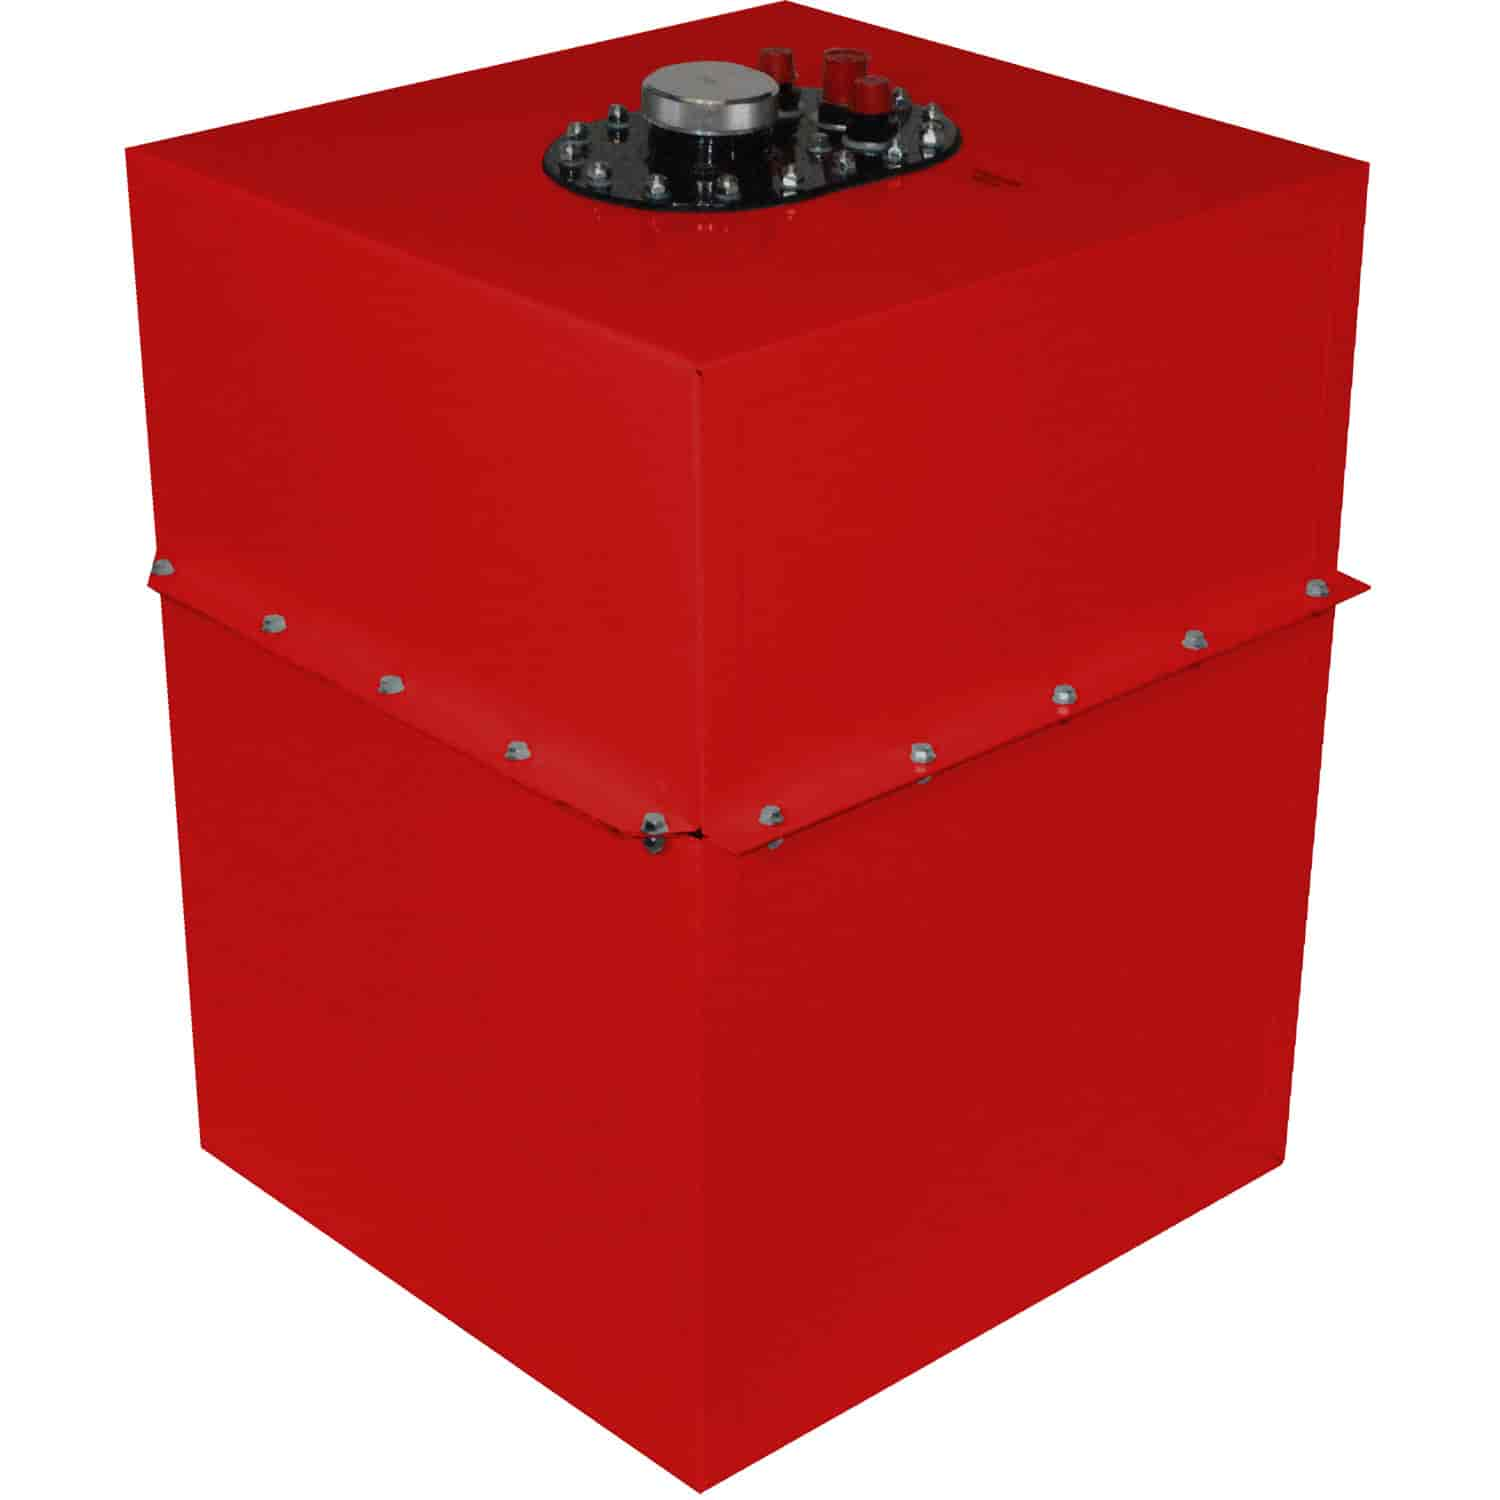 RCI Upright Steel Fuel Cell Dimensions: Length: 18 5